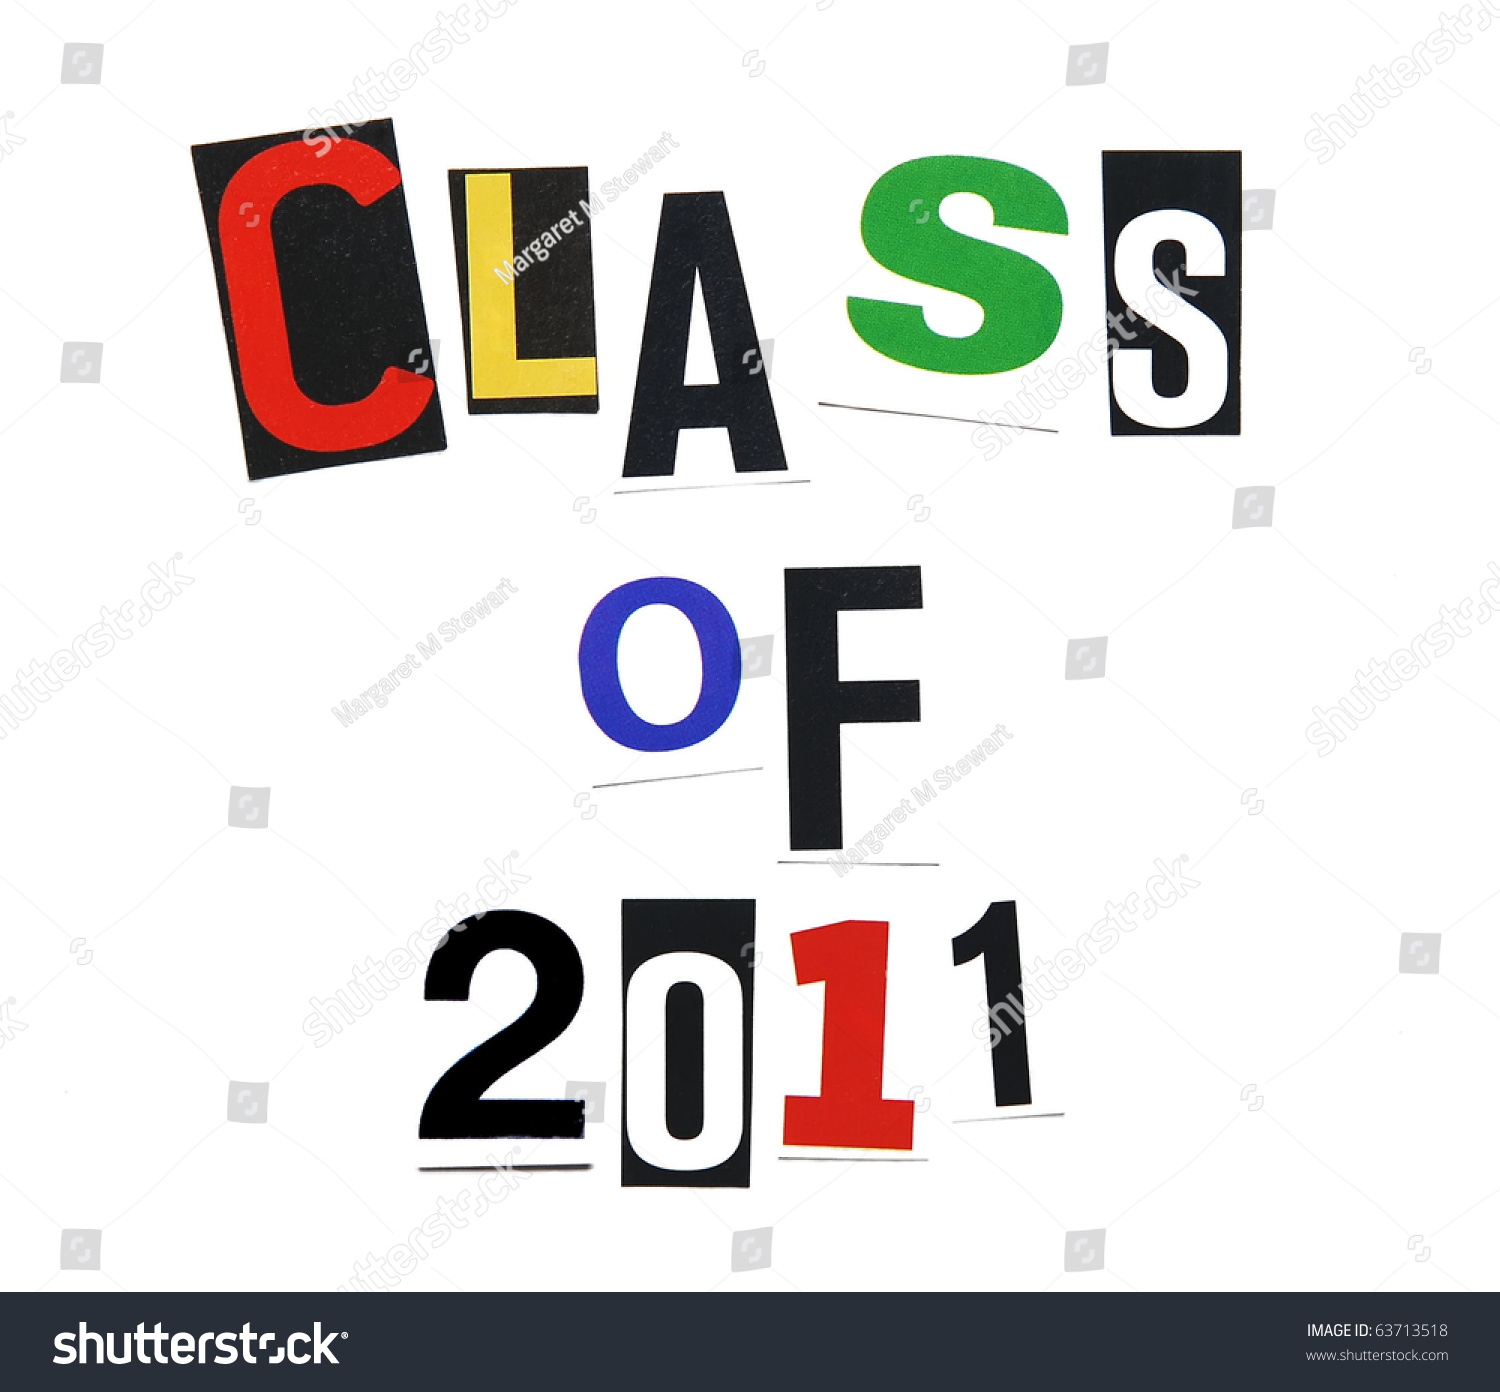 Class 2011 Written Mix Colorful Cutout Stock Photo